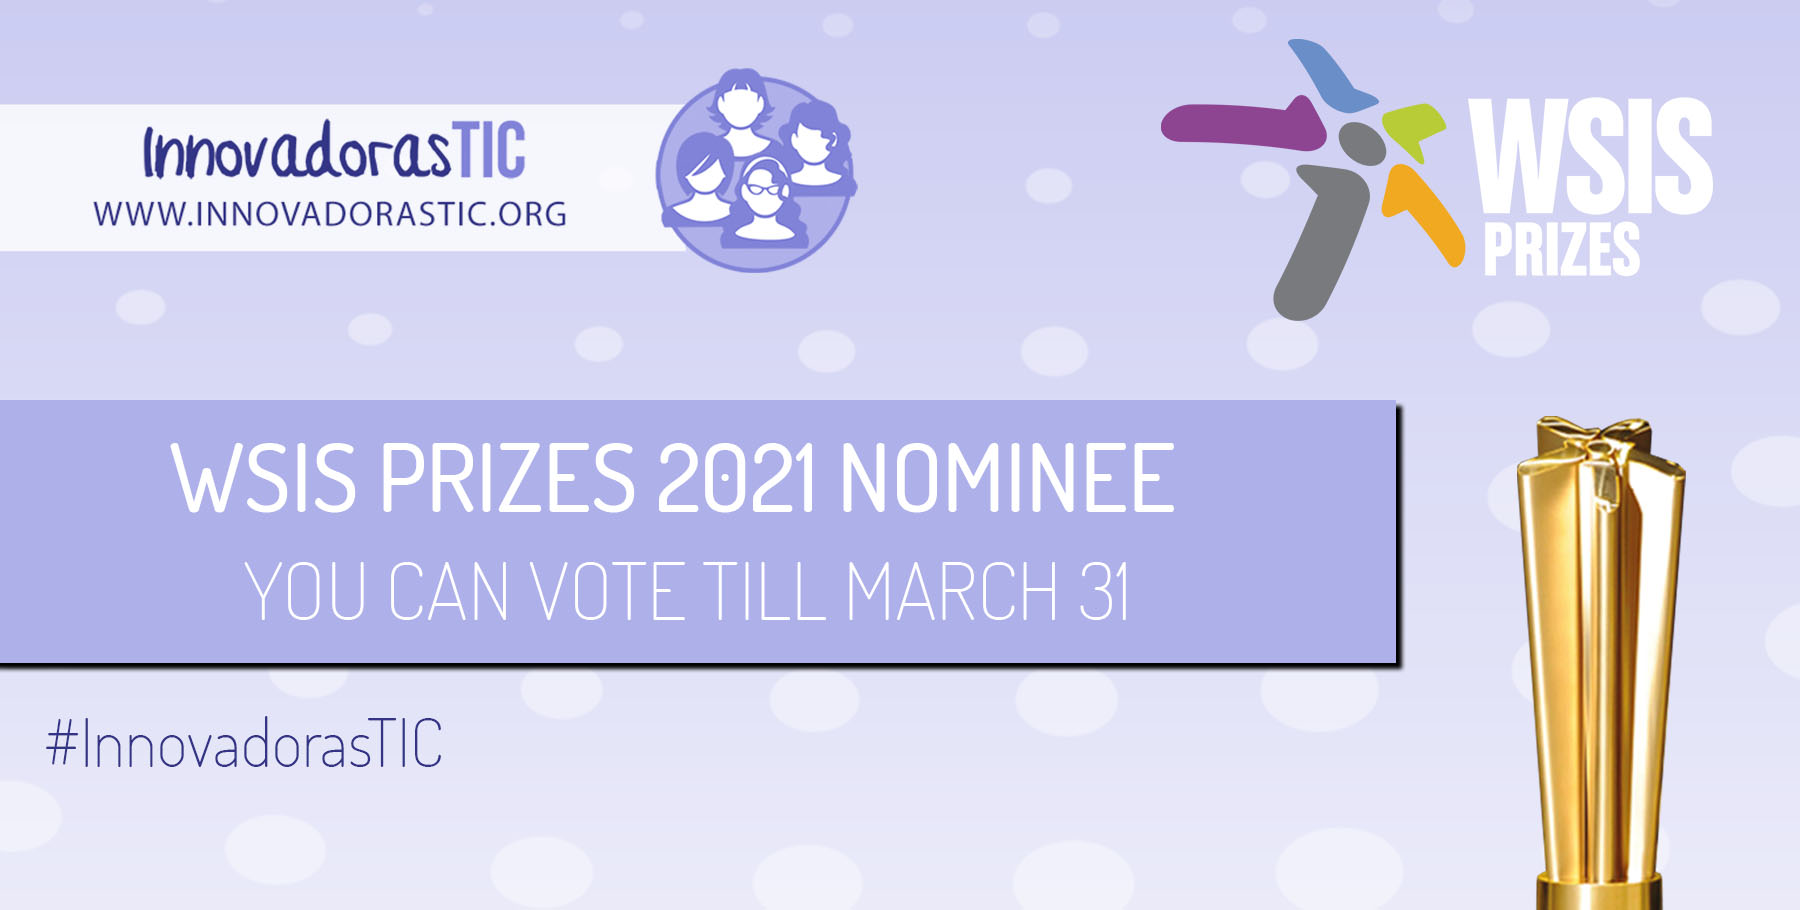 InnovadorasTIC nominated for the WSIS Prizes 2021: your vote can make the difference